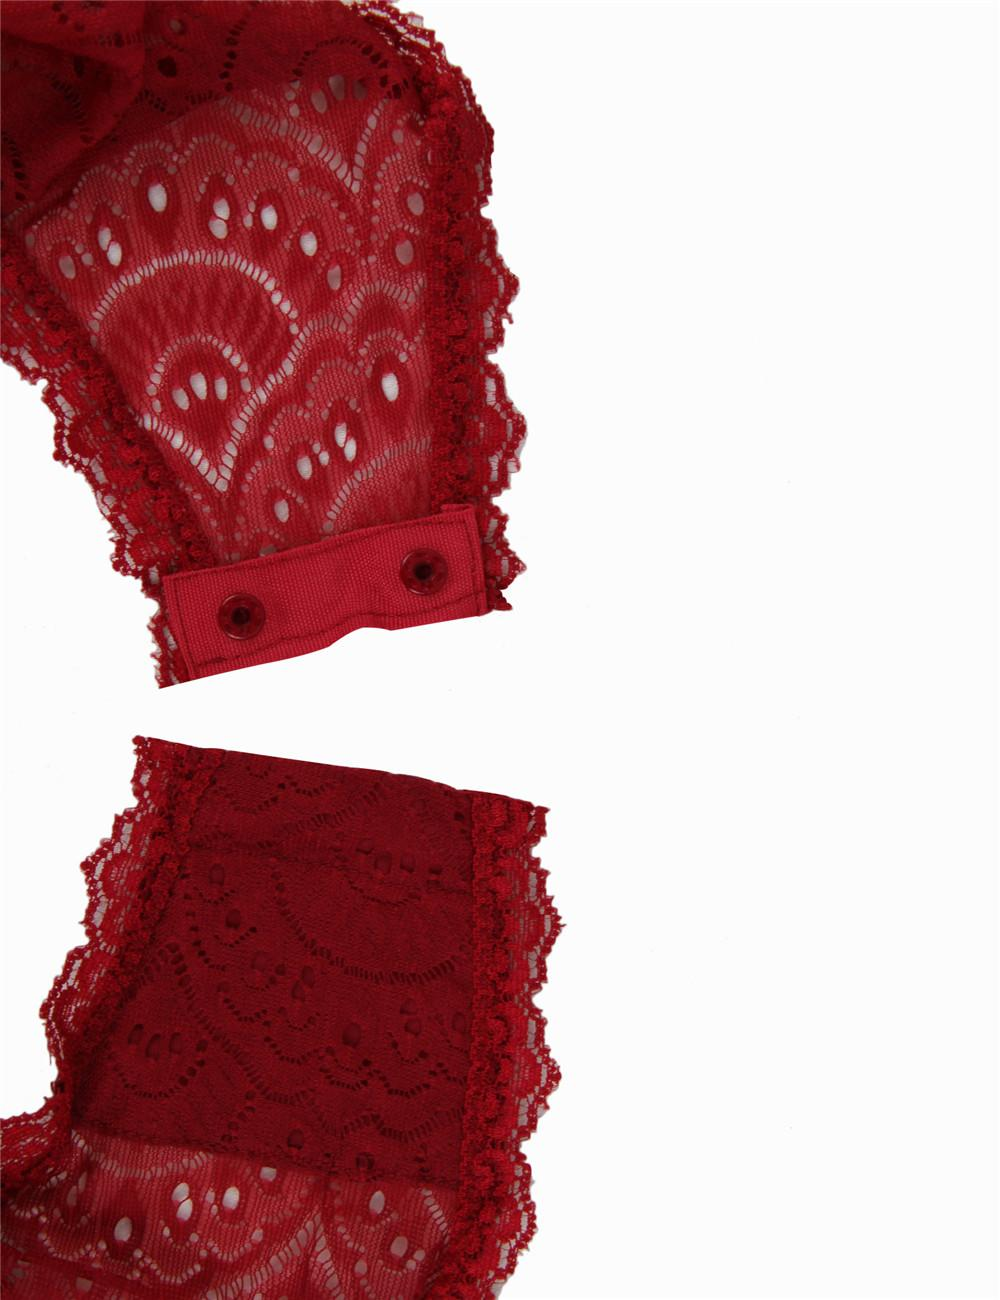 Peacock Burgundy Lace Teddy snap crotch closure